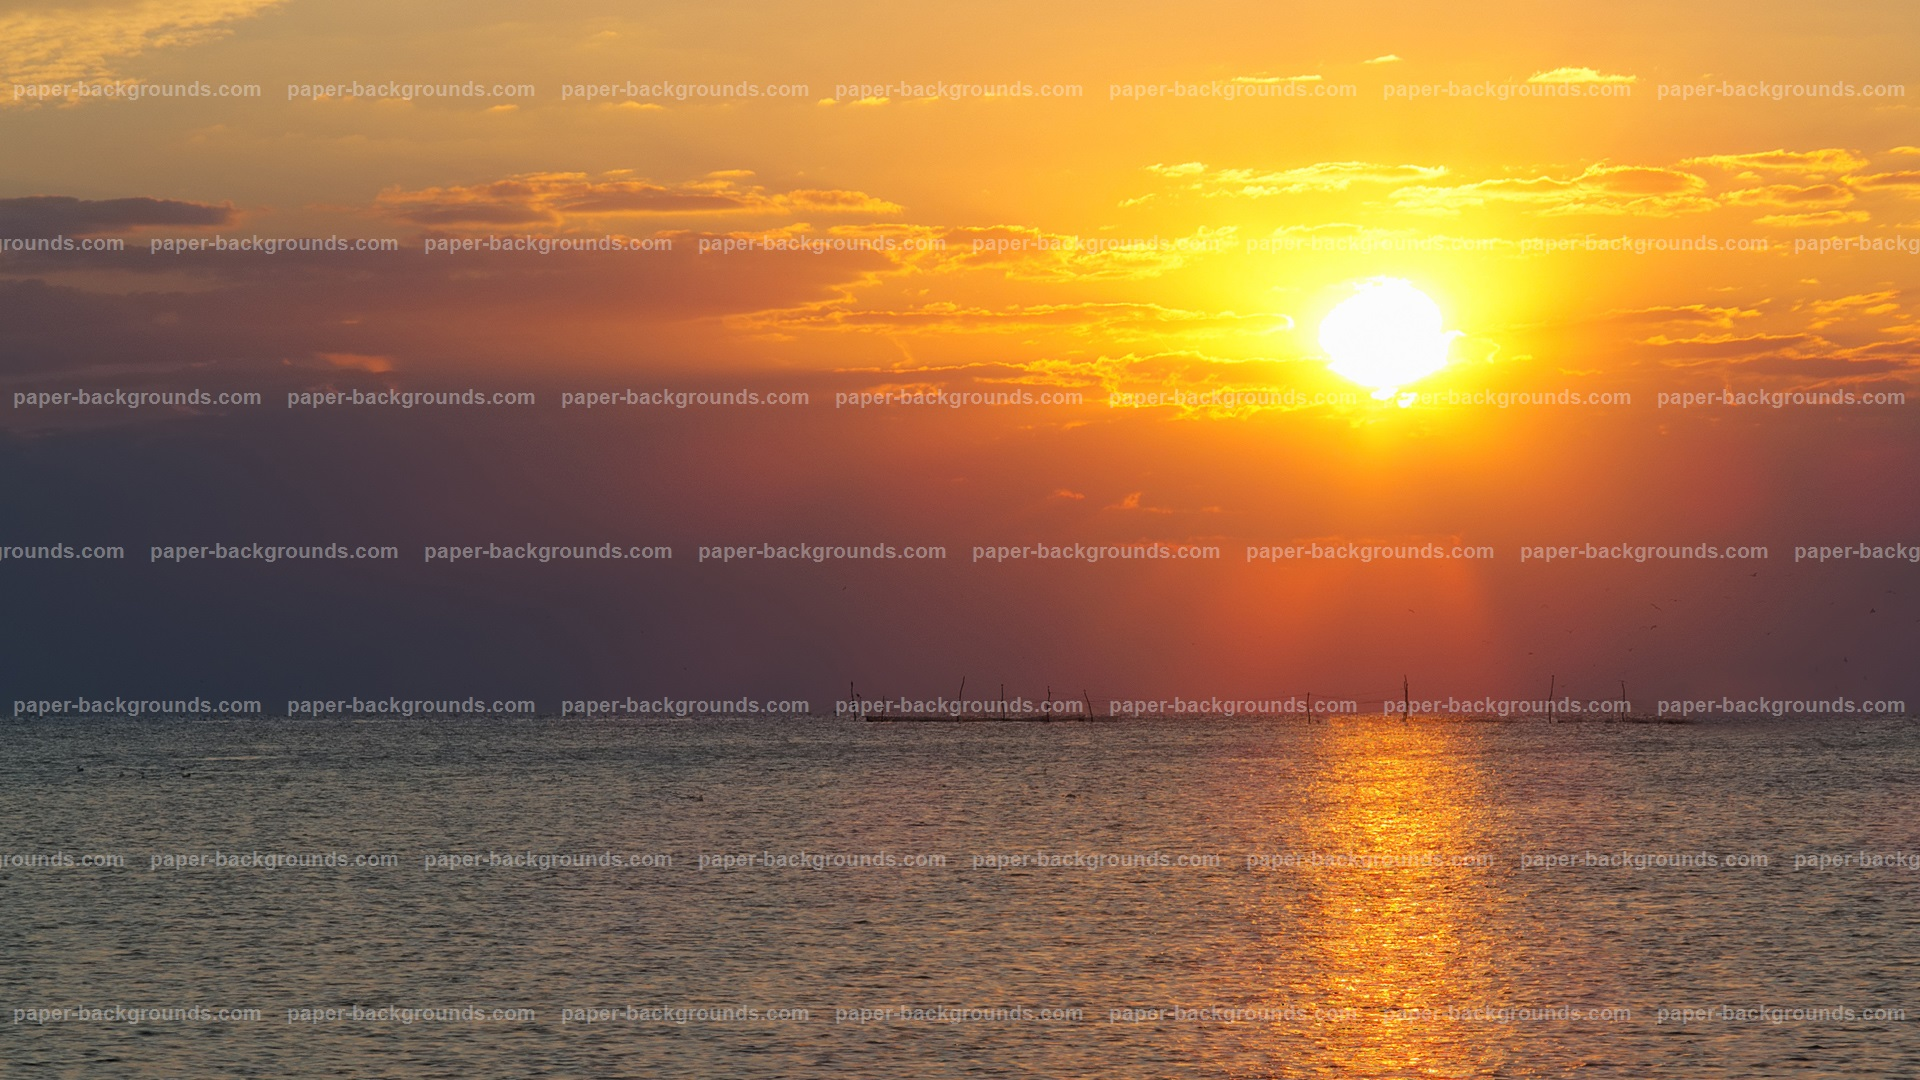 Sea Sunrise Sunset Background HD